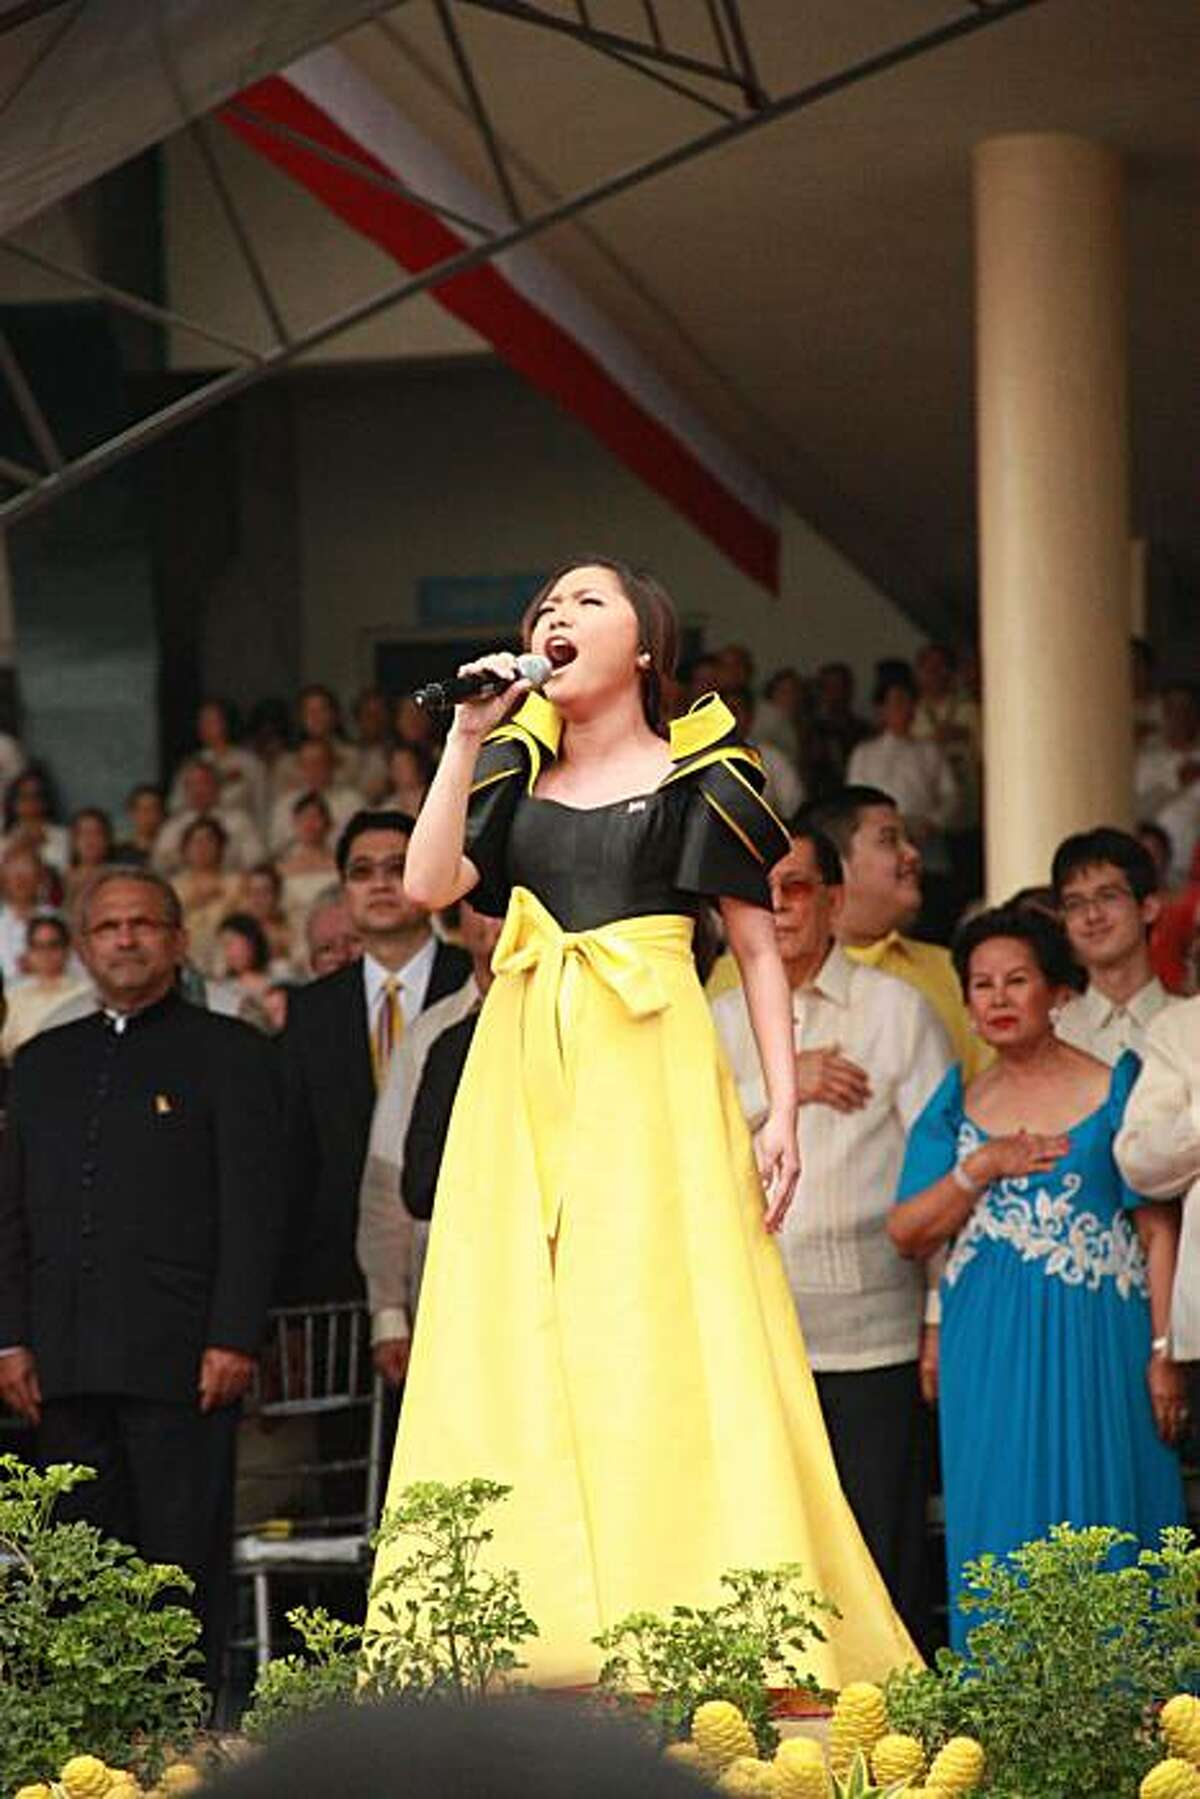 """Charice Pempengco, Filipina teen star and newly appointed cast member of hit TV series """"Glee,"""" singing the Philippines' national anthem at the inauguration of President Benigno Aquino III in Manila on June 30, 2010."""